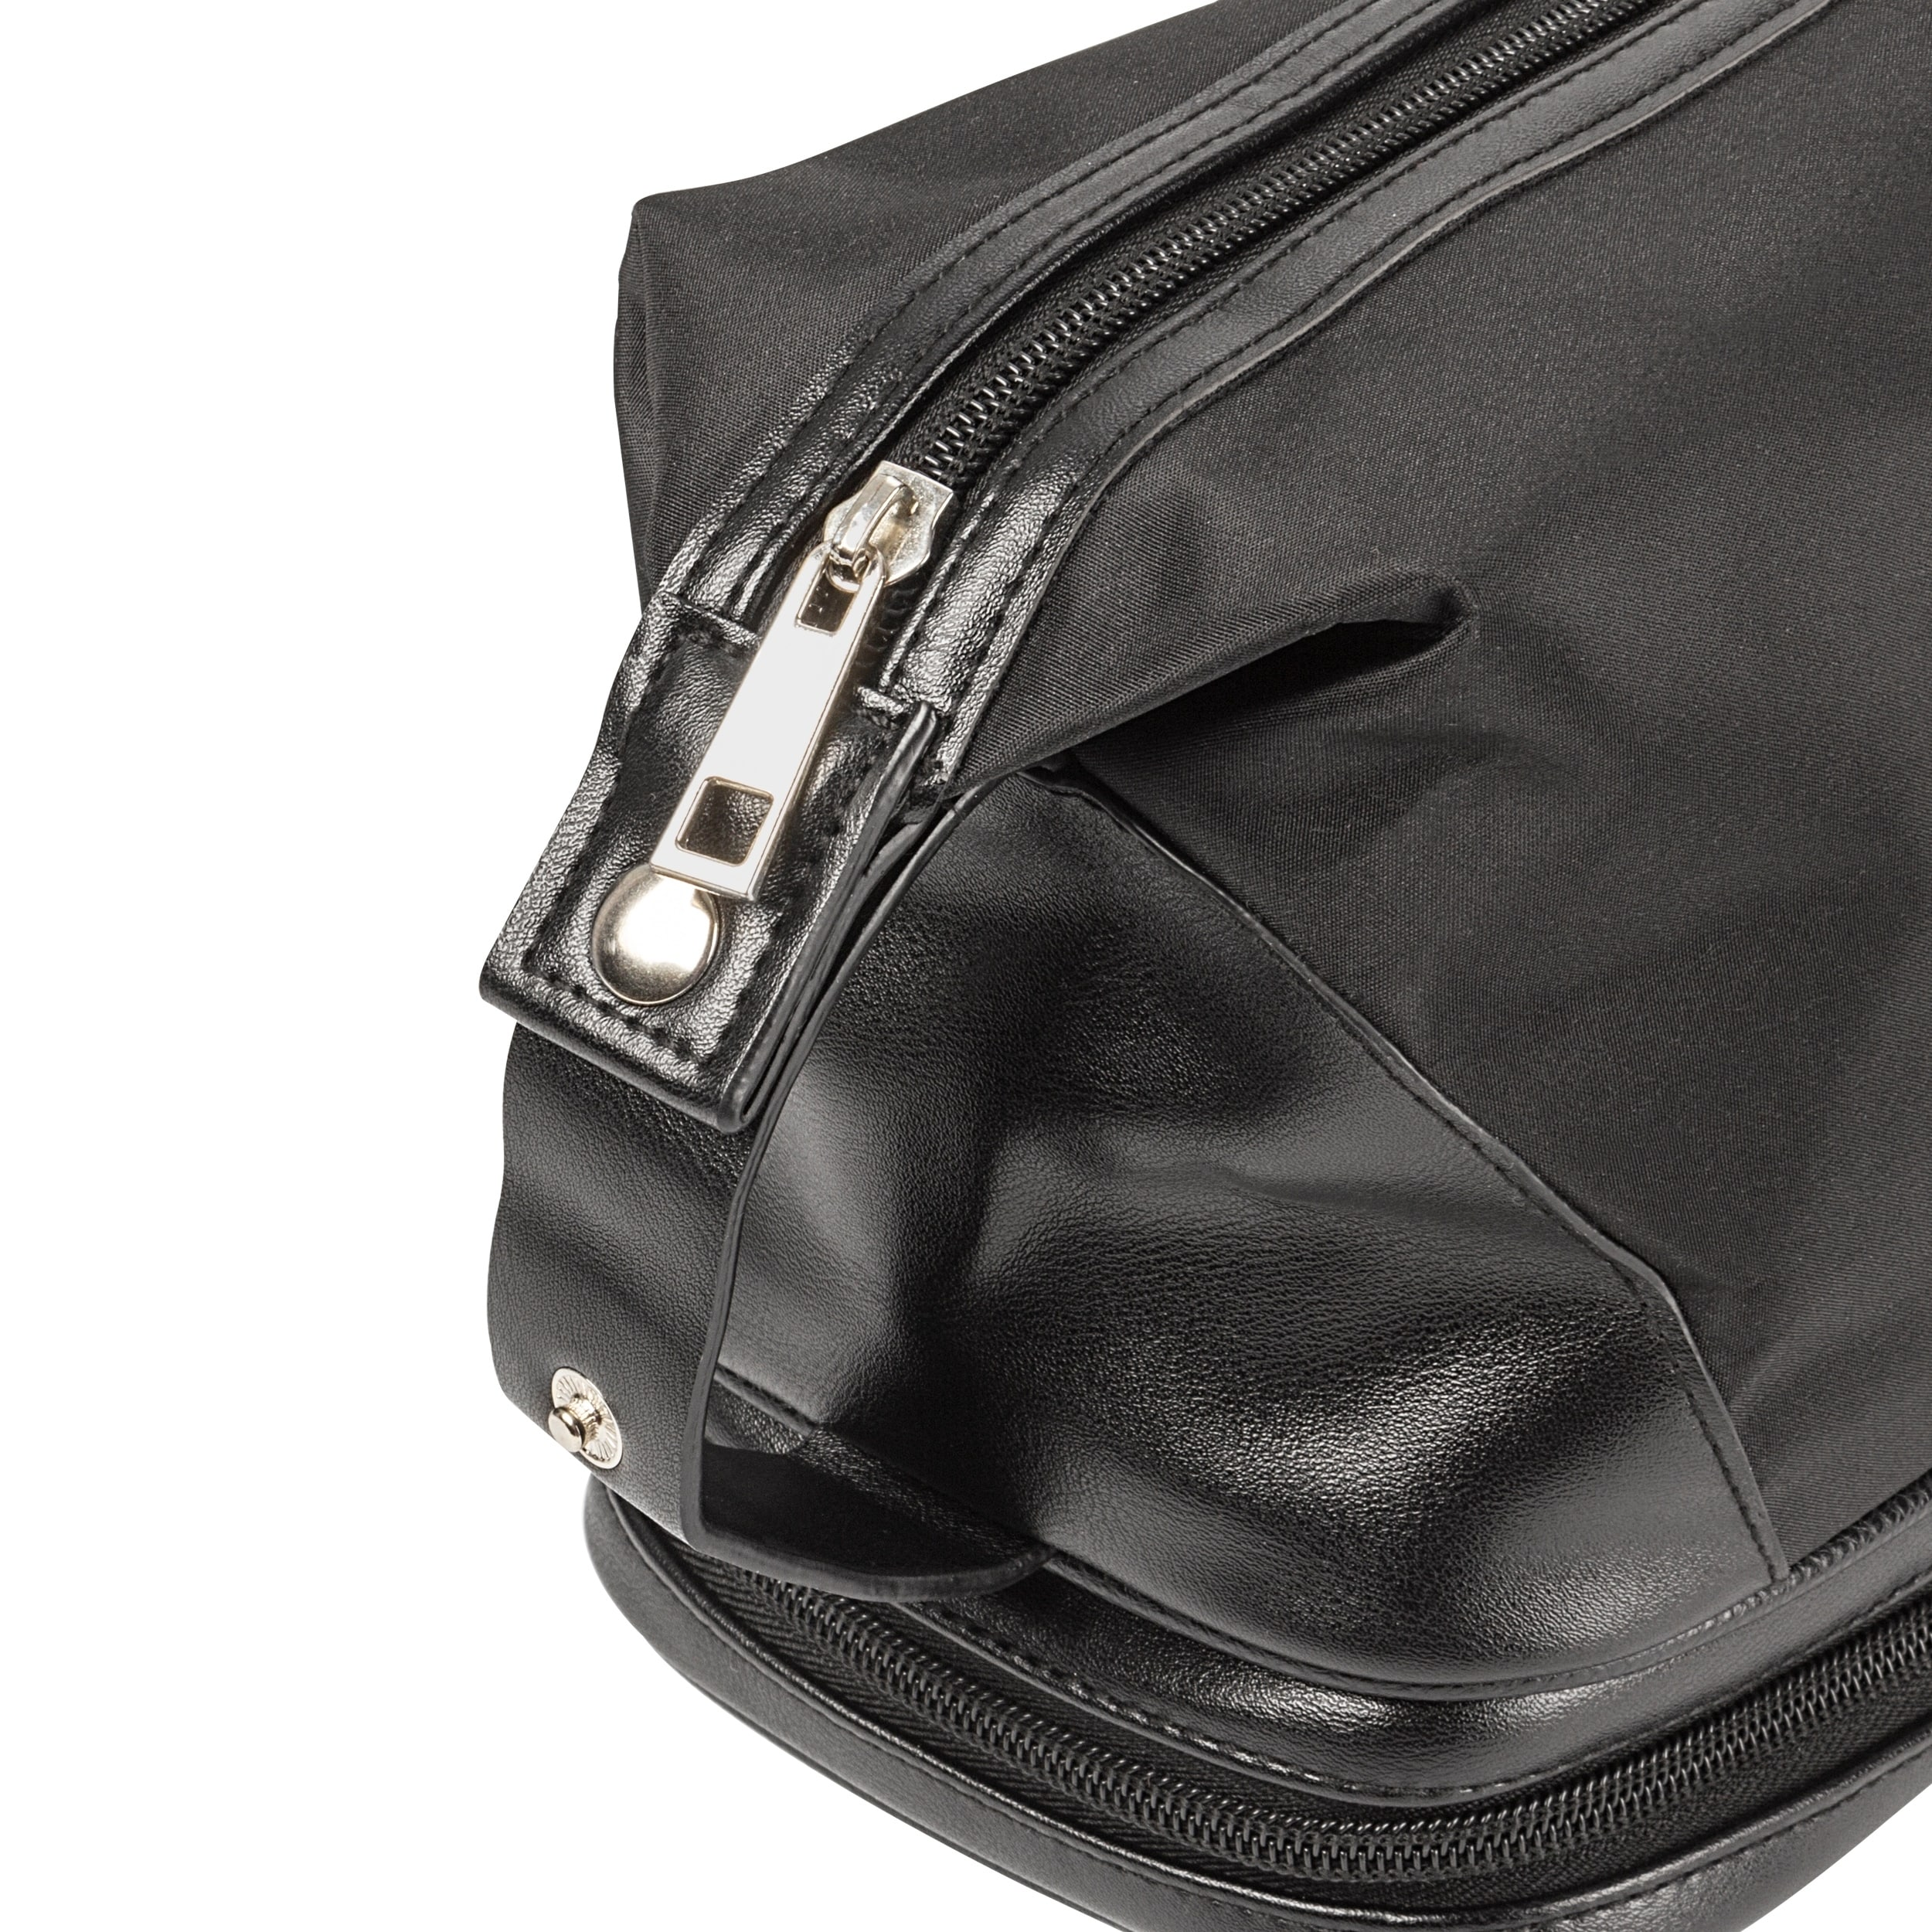 145d642b4d Shop Personalized Microfiber Toiletry Bag - On Sale - Free Shipping On  Orders Over  45 - Overstock.com - 21236124